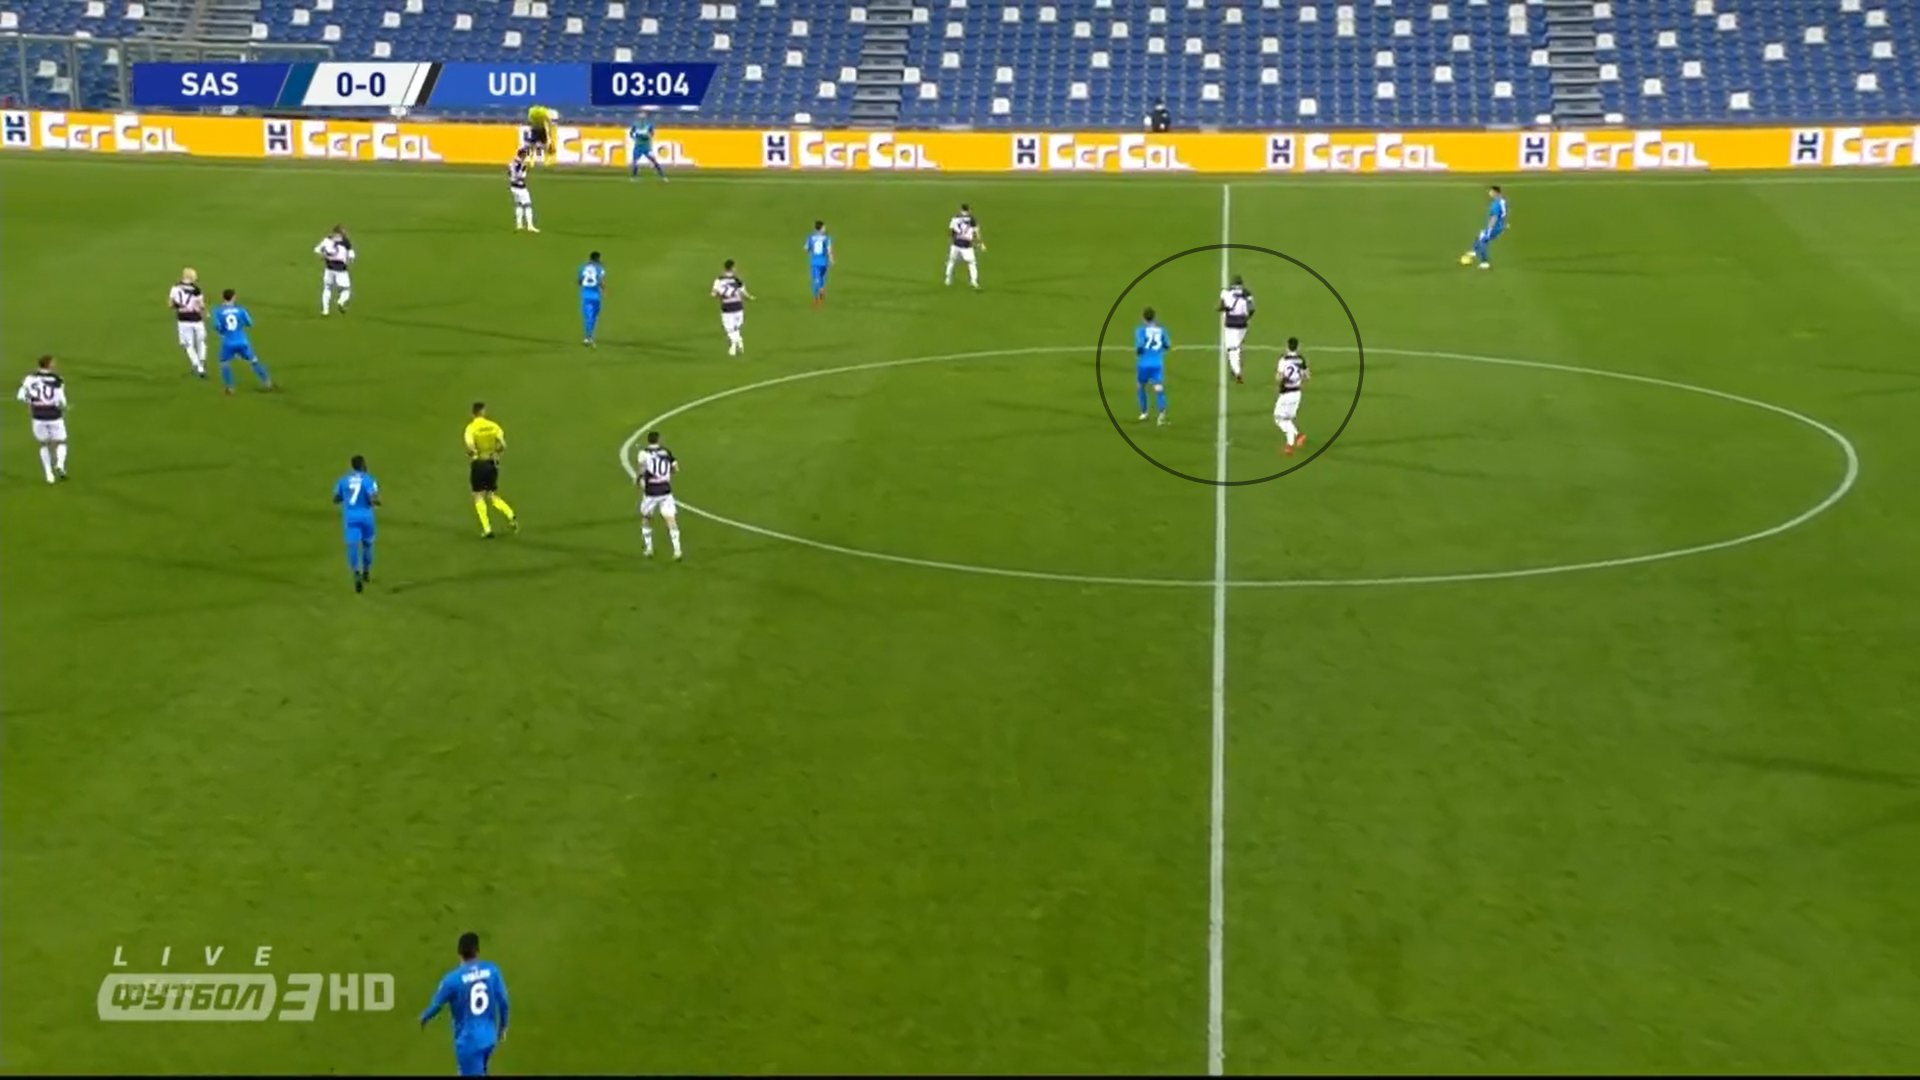 Serie A 2020/21: Sassuolo vs Udinese – tactical analysis tactics